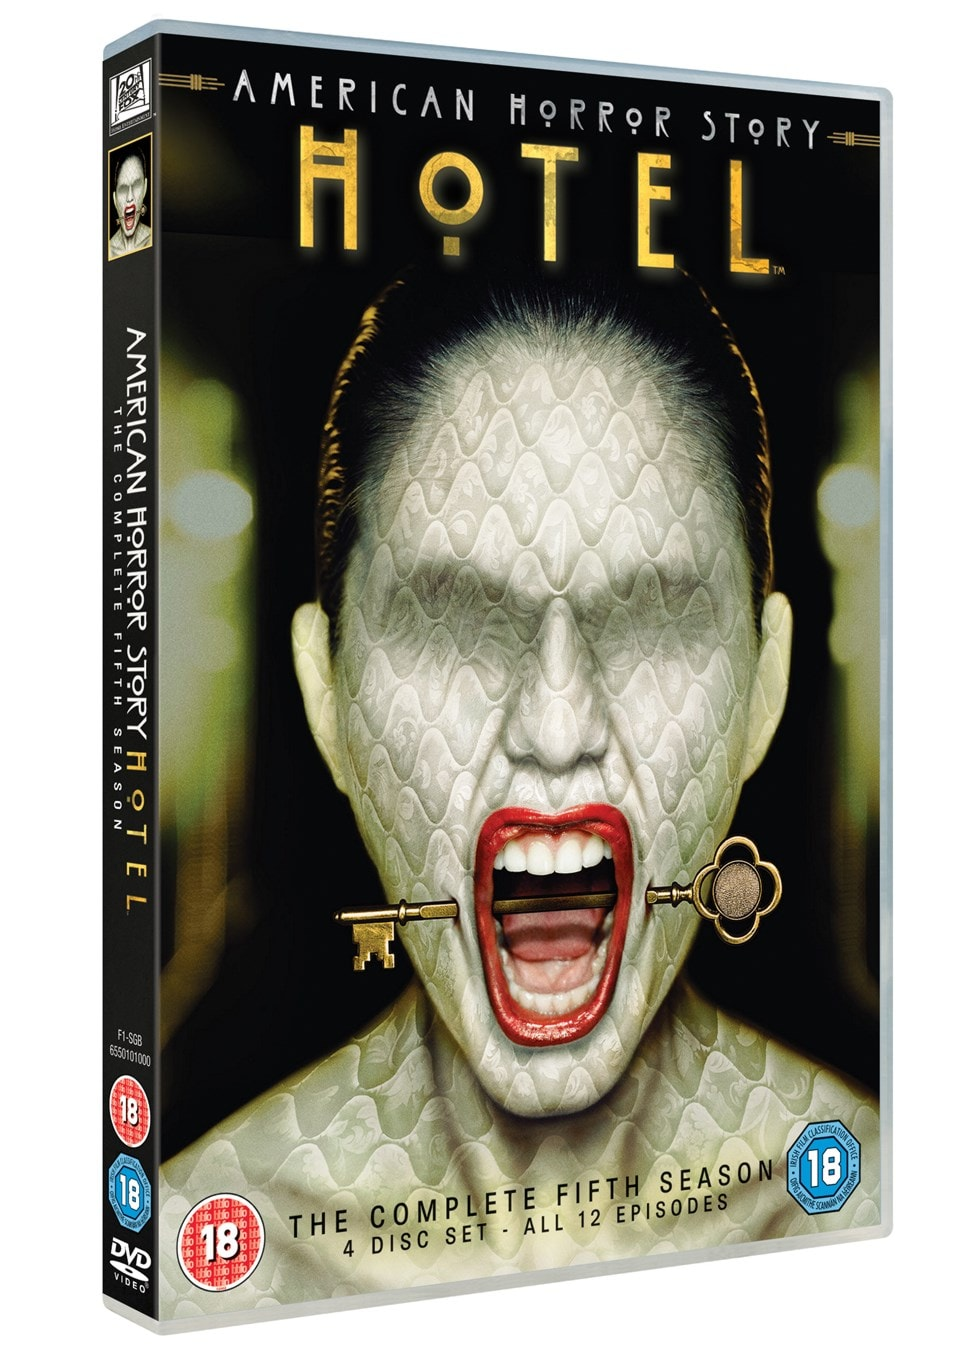 American Horror Story: Hotel - The Complete Fifth Season - 2